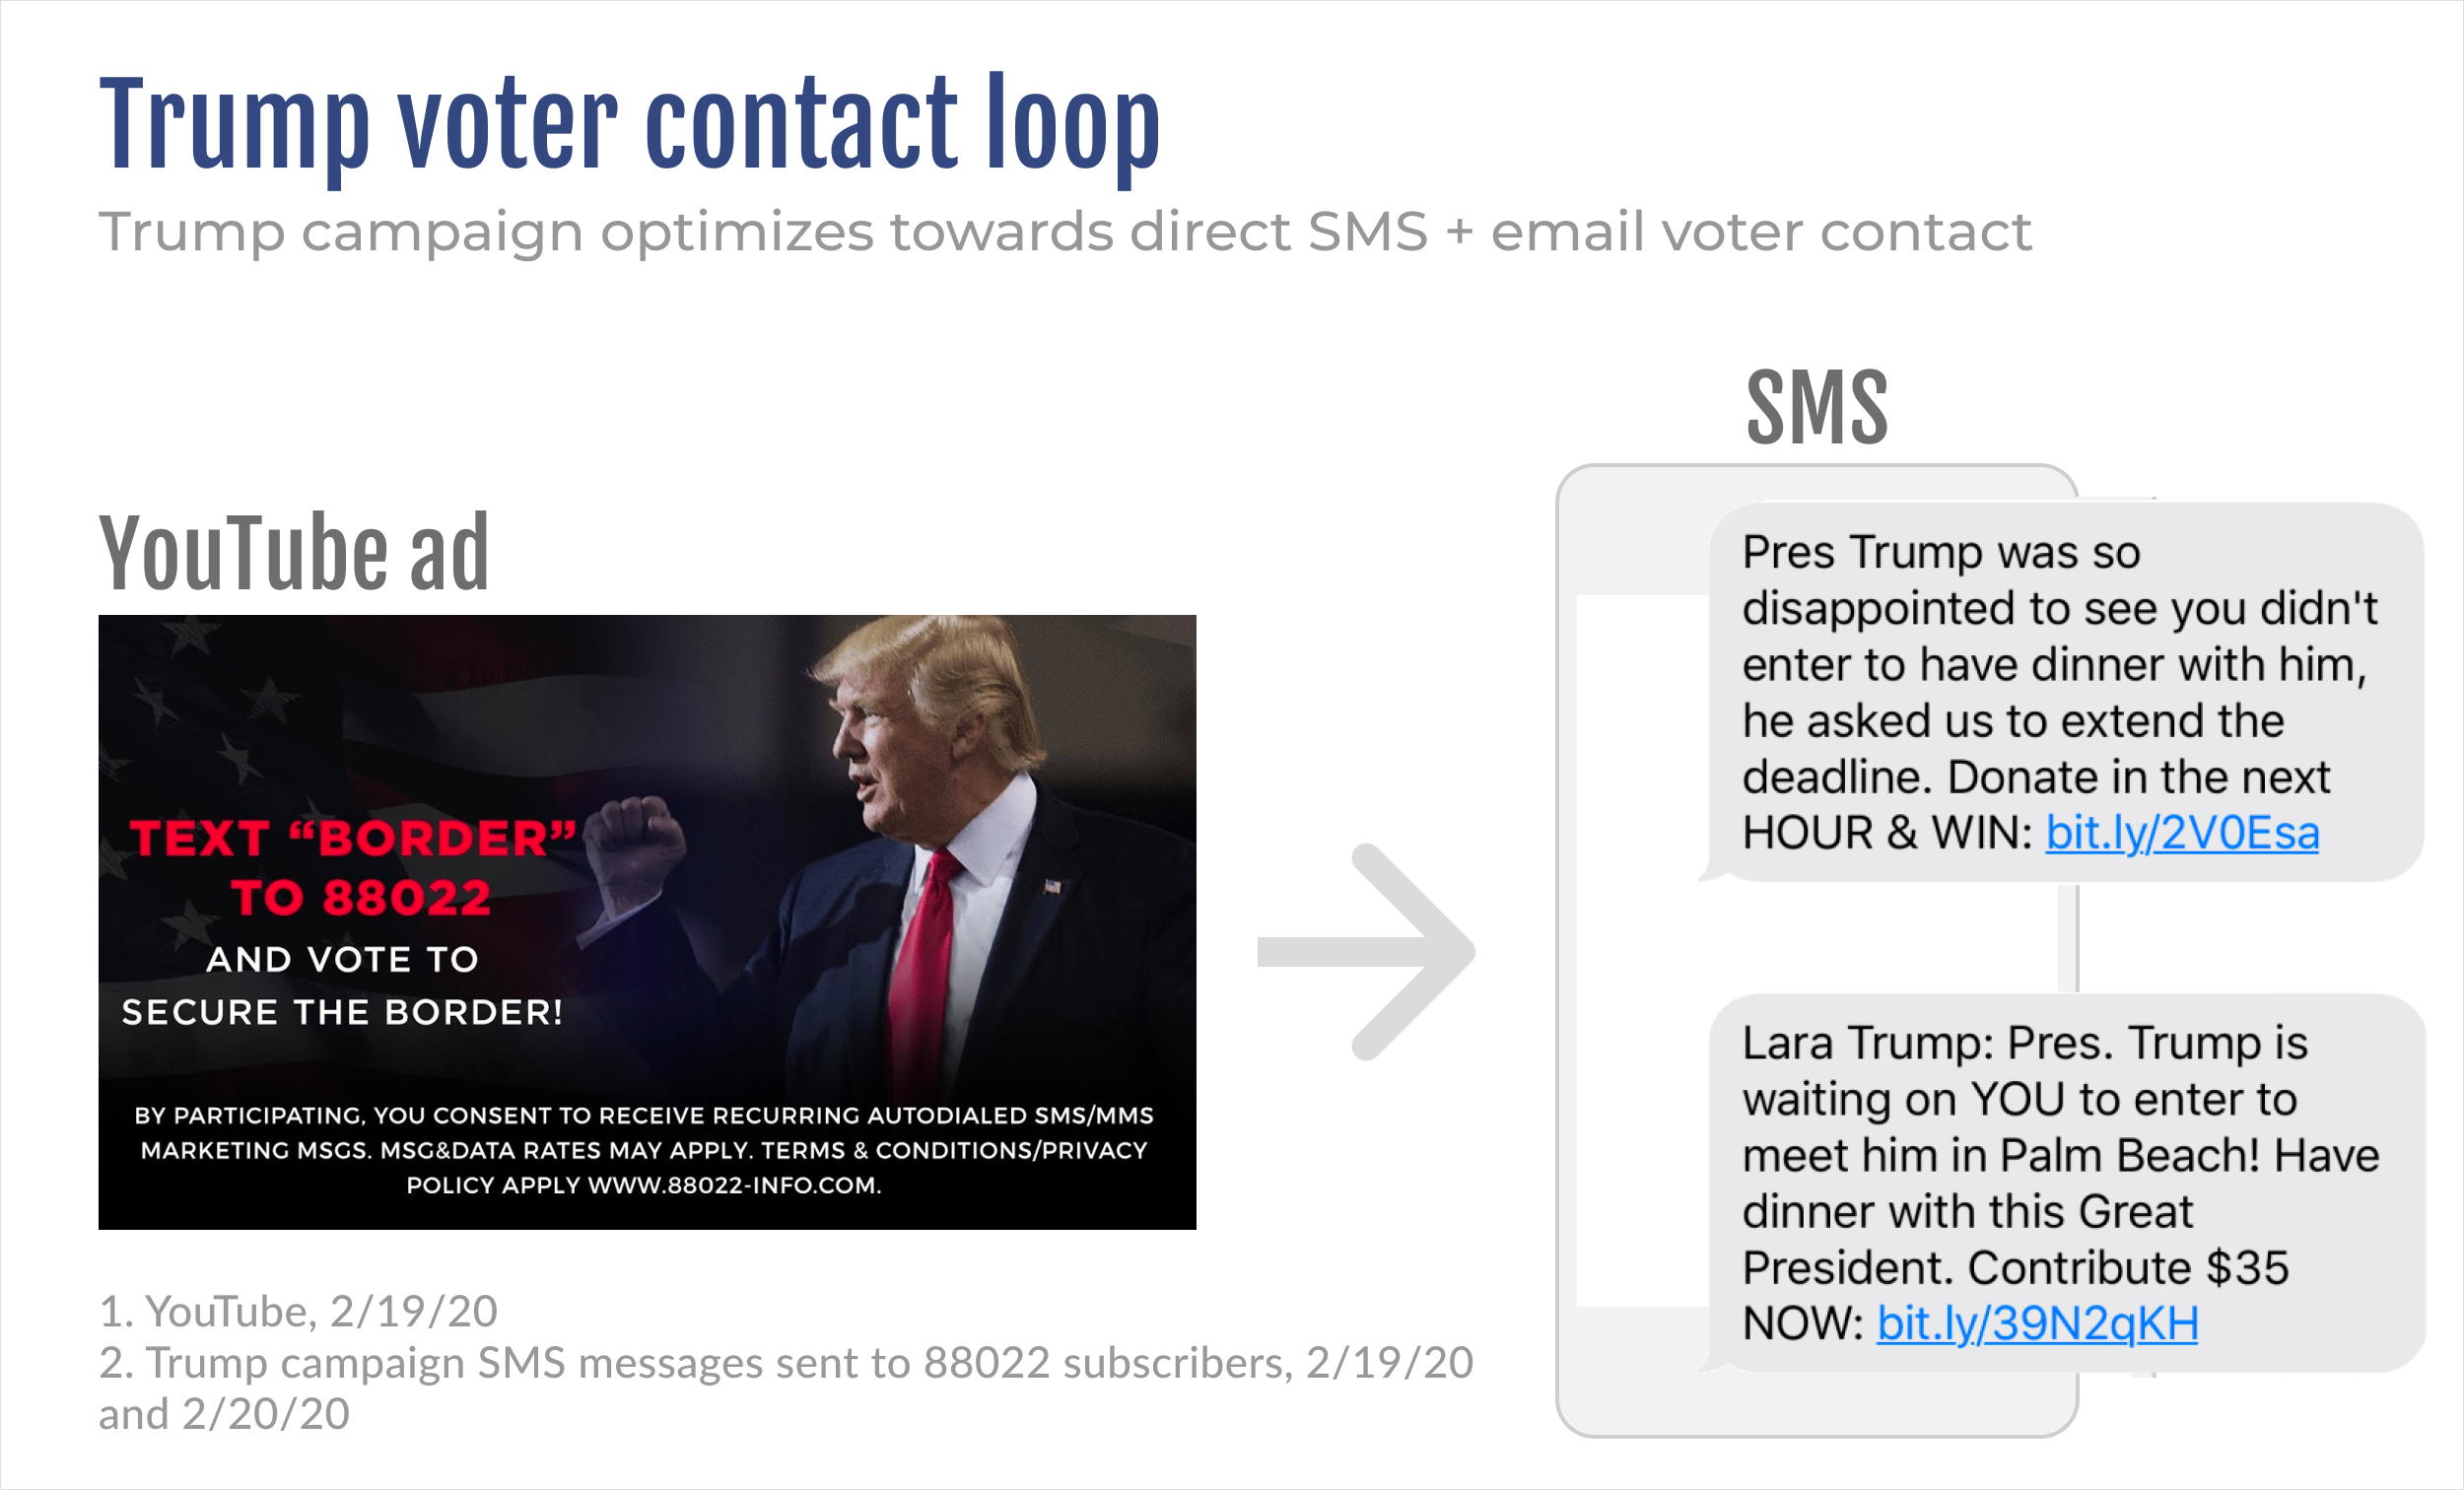 Trump voter contact loop optimizes towards direct SMS and email voter contact